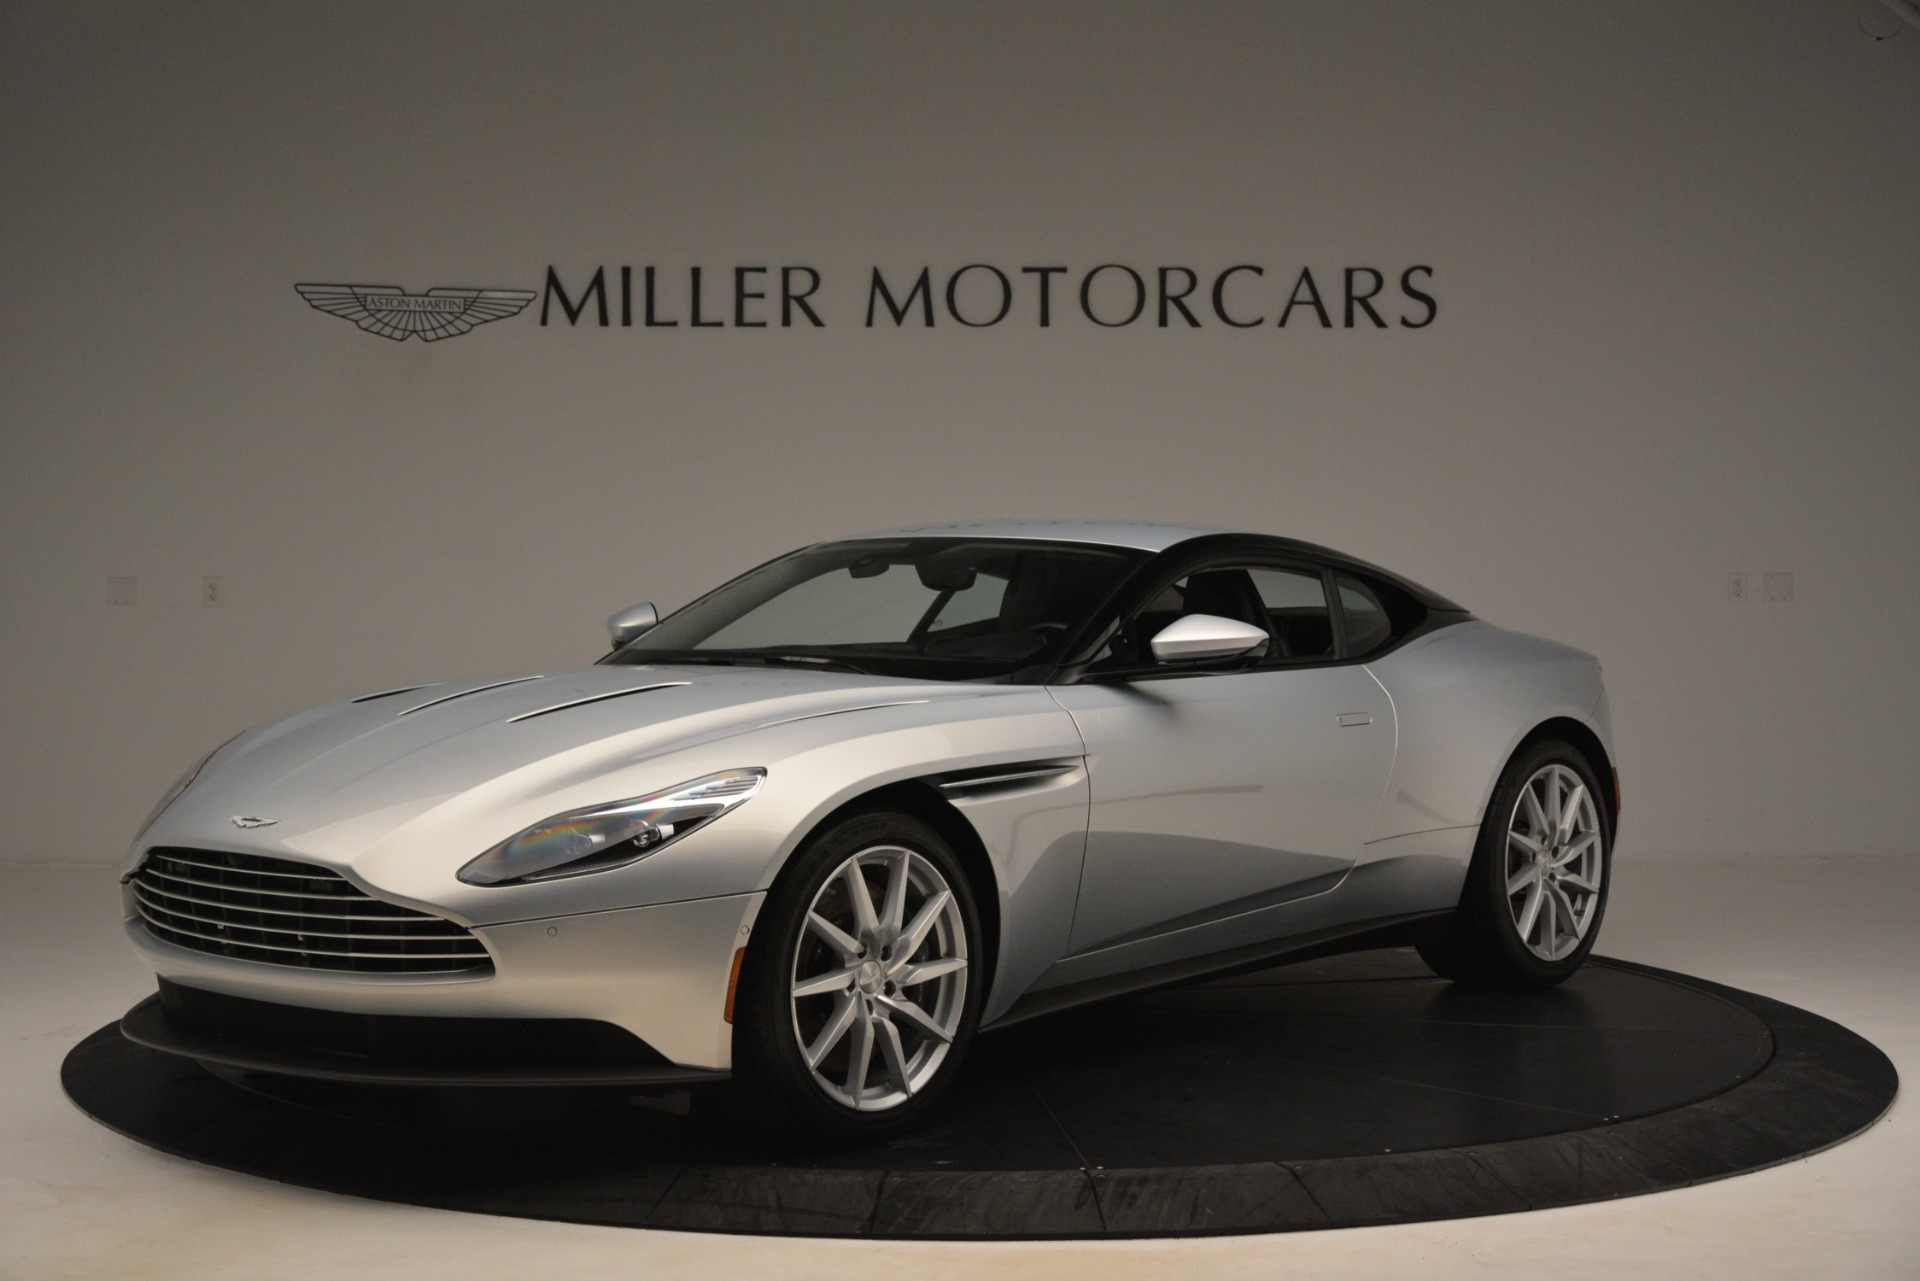 Used 2018 Aston Martin DB11 V12 Coupe for sale Sold at Bugatti of Greenwich in Greenwich CT 06830 1